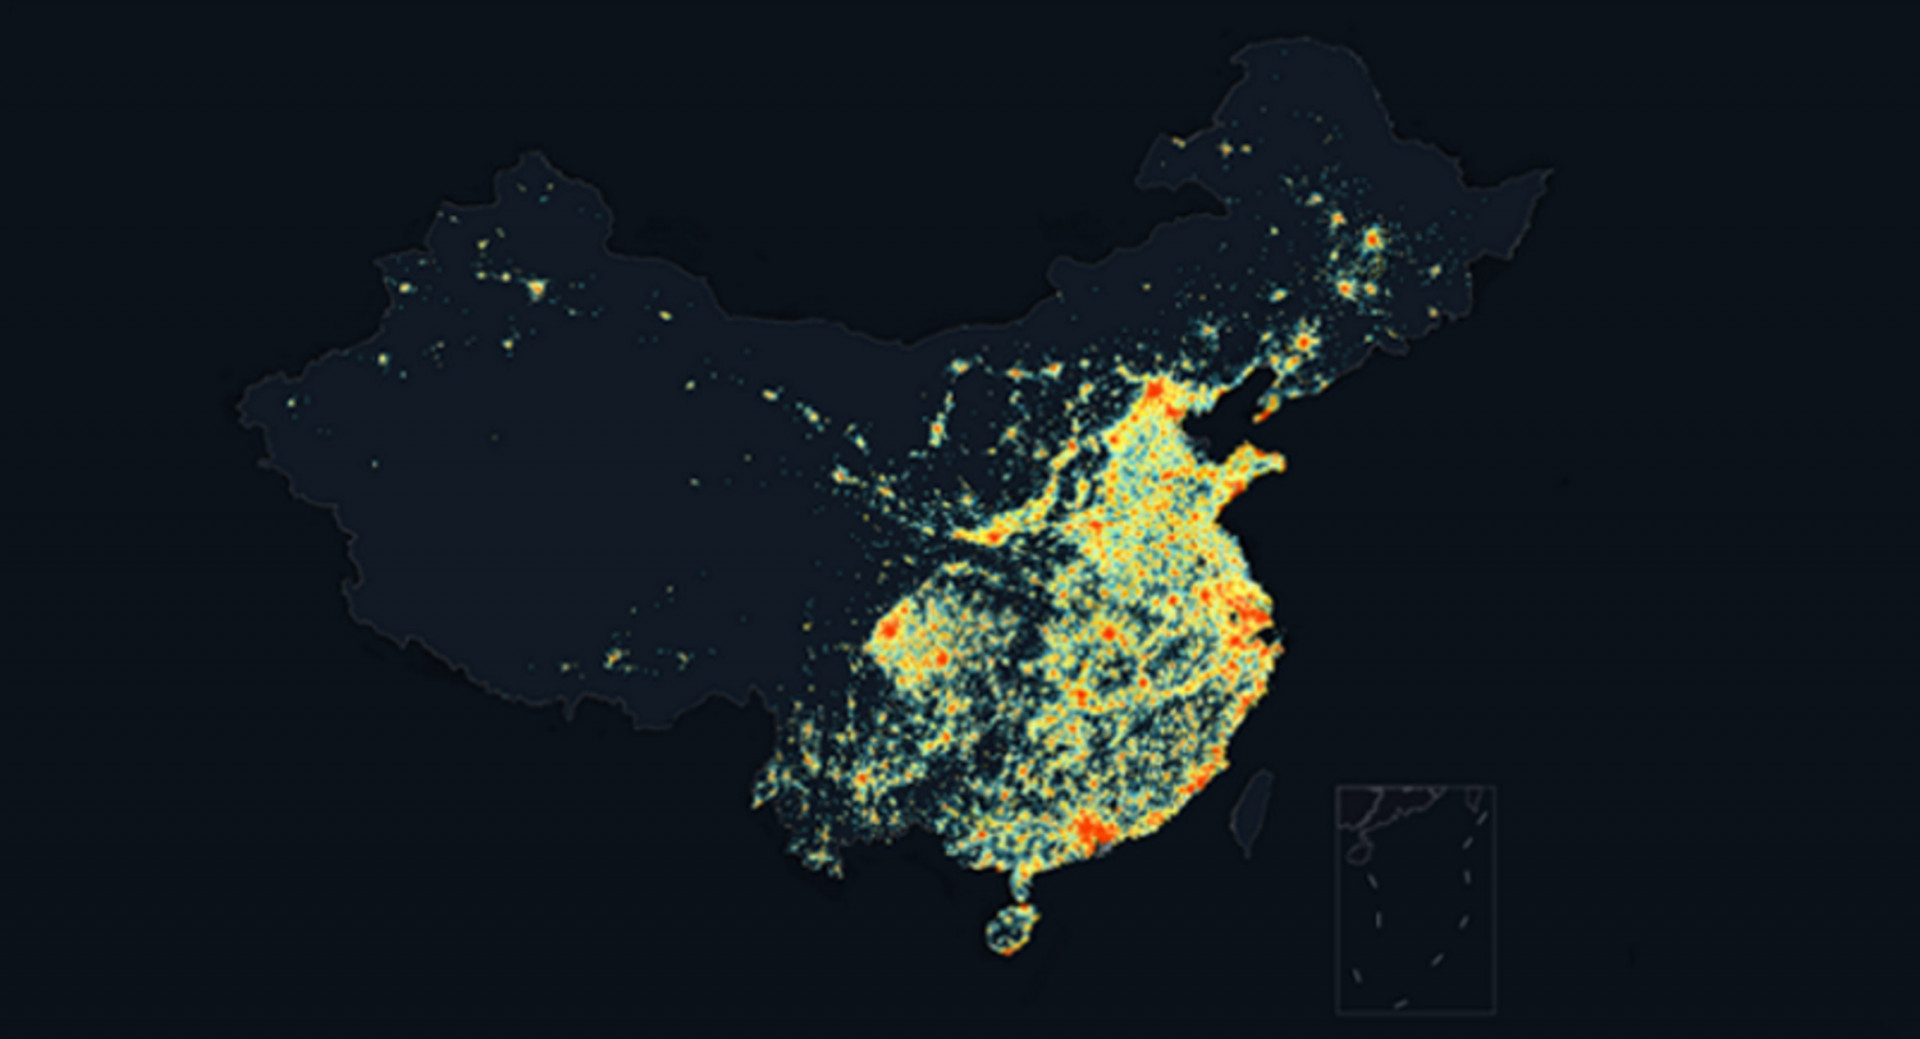 DiDi can monitor in real time, from which area a user is calling DiDi (Image Credit: DiDi)